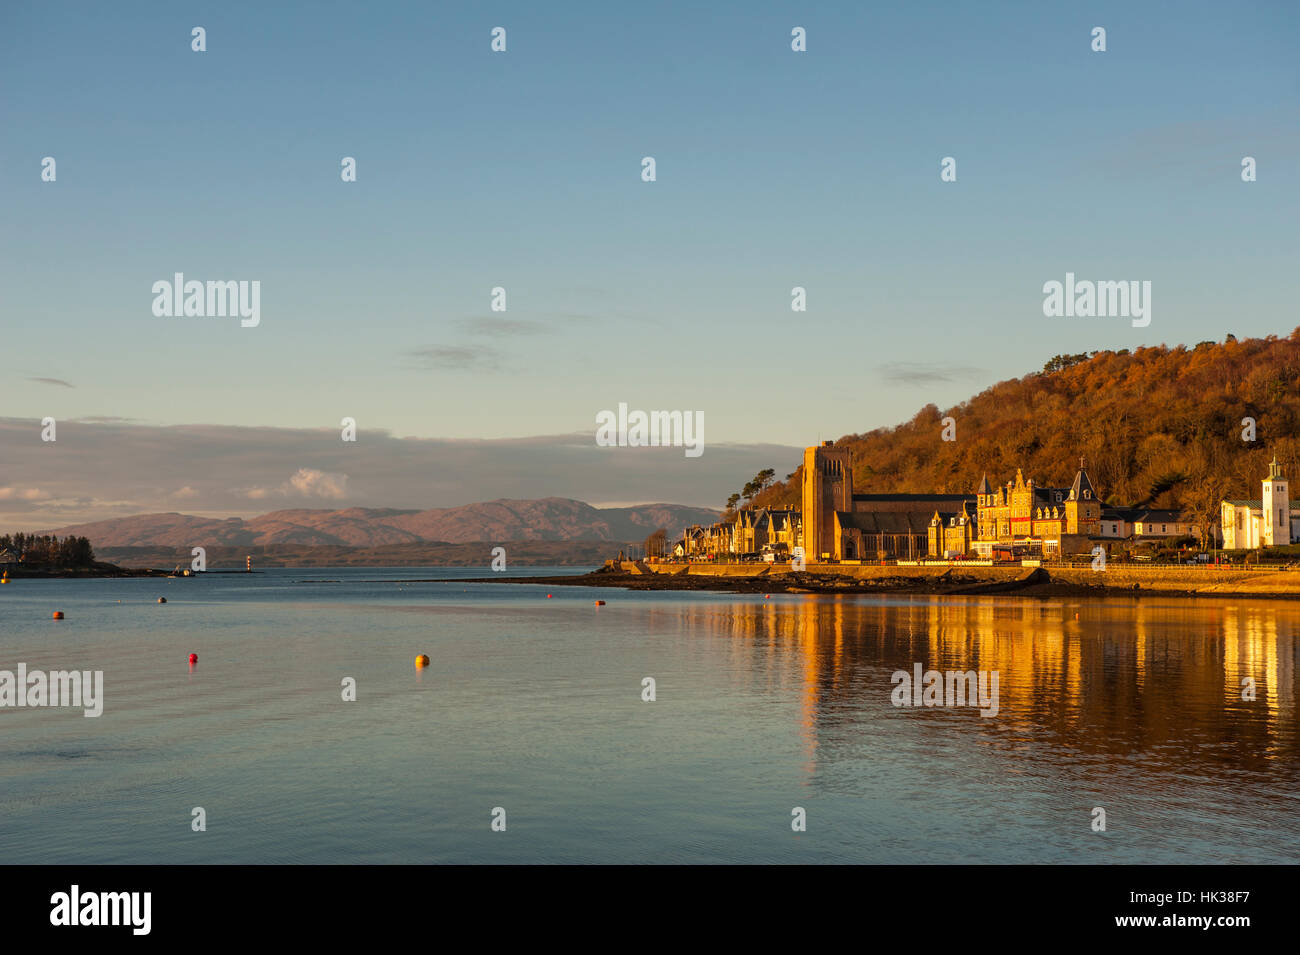 Oban from the pier looking towards Lismore. - Stock Image